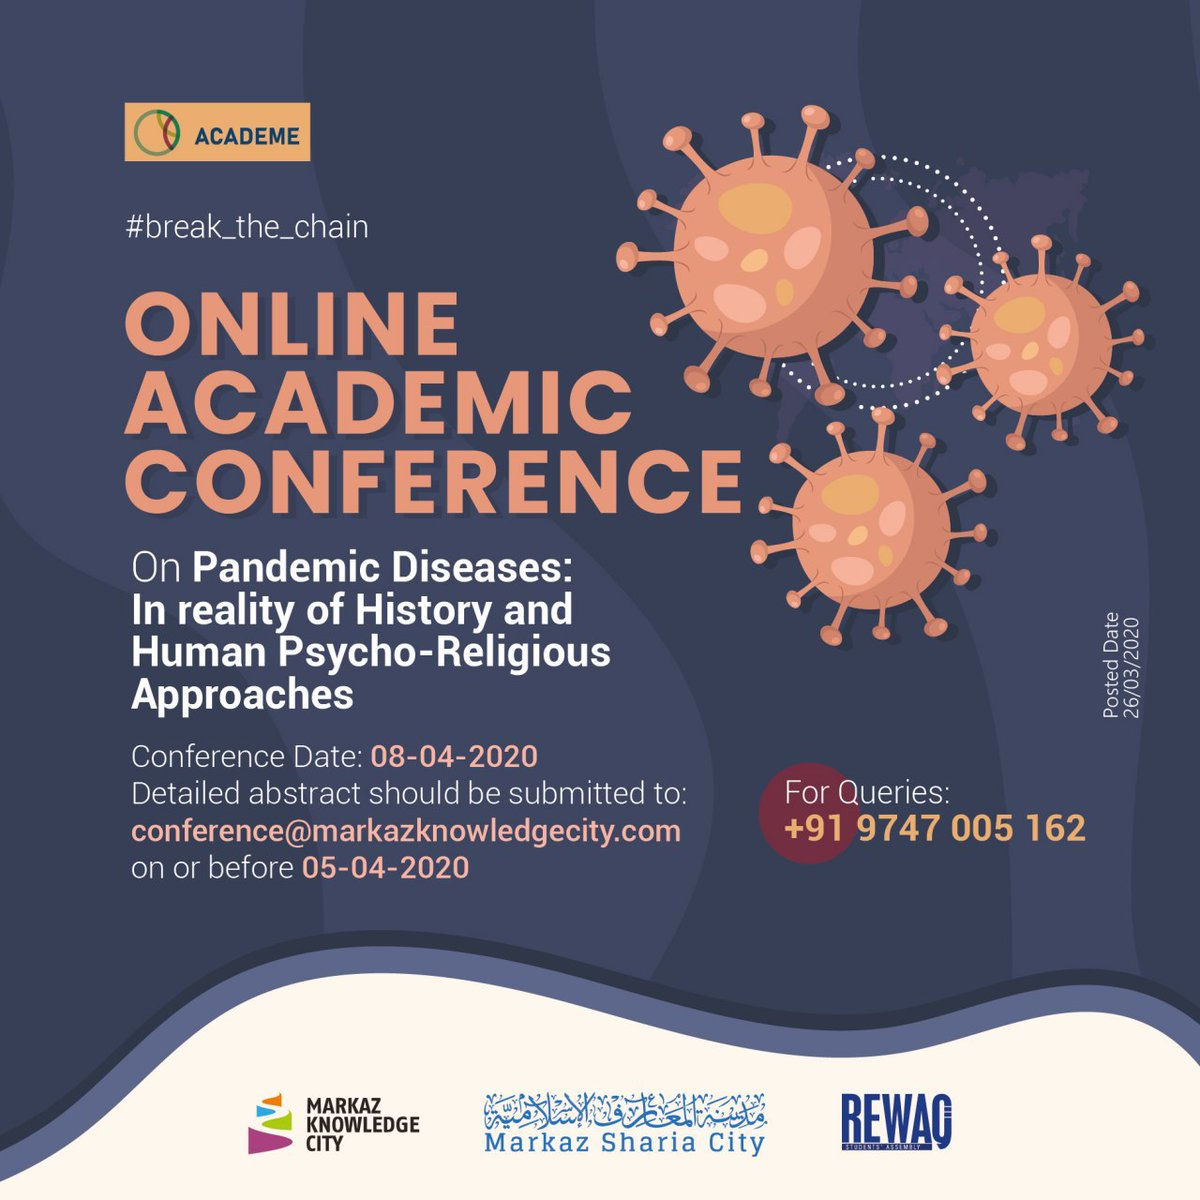 #break_the_chain Online Academic Conference On Pandemic Diseases: In reality of History and Human Psycho-Religious Approaches On 08-04-2020  For Queries: 9747005162  #OnlineAcademicConference #Online #PandemicDiseases #CoVID19 #StayHome #StaySafe #Weshallovercome https://t.co/JpTrMv1AF9